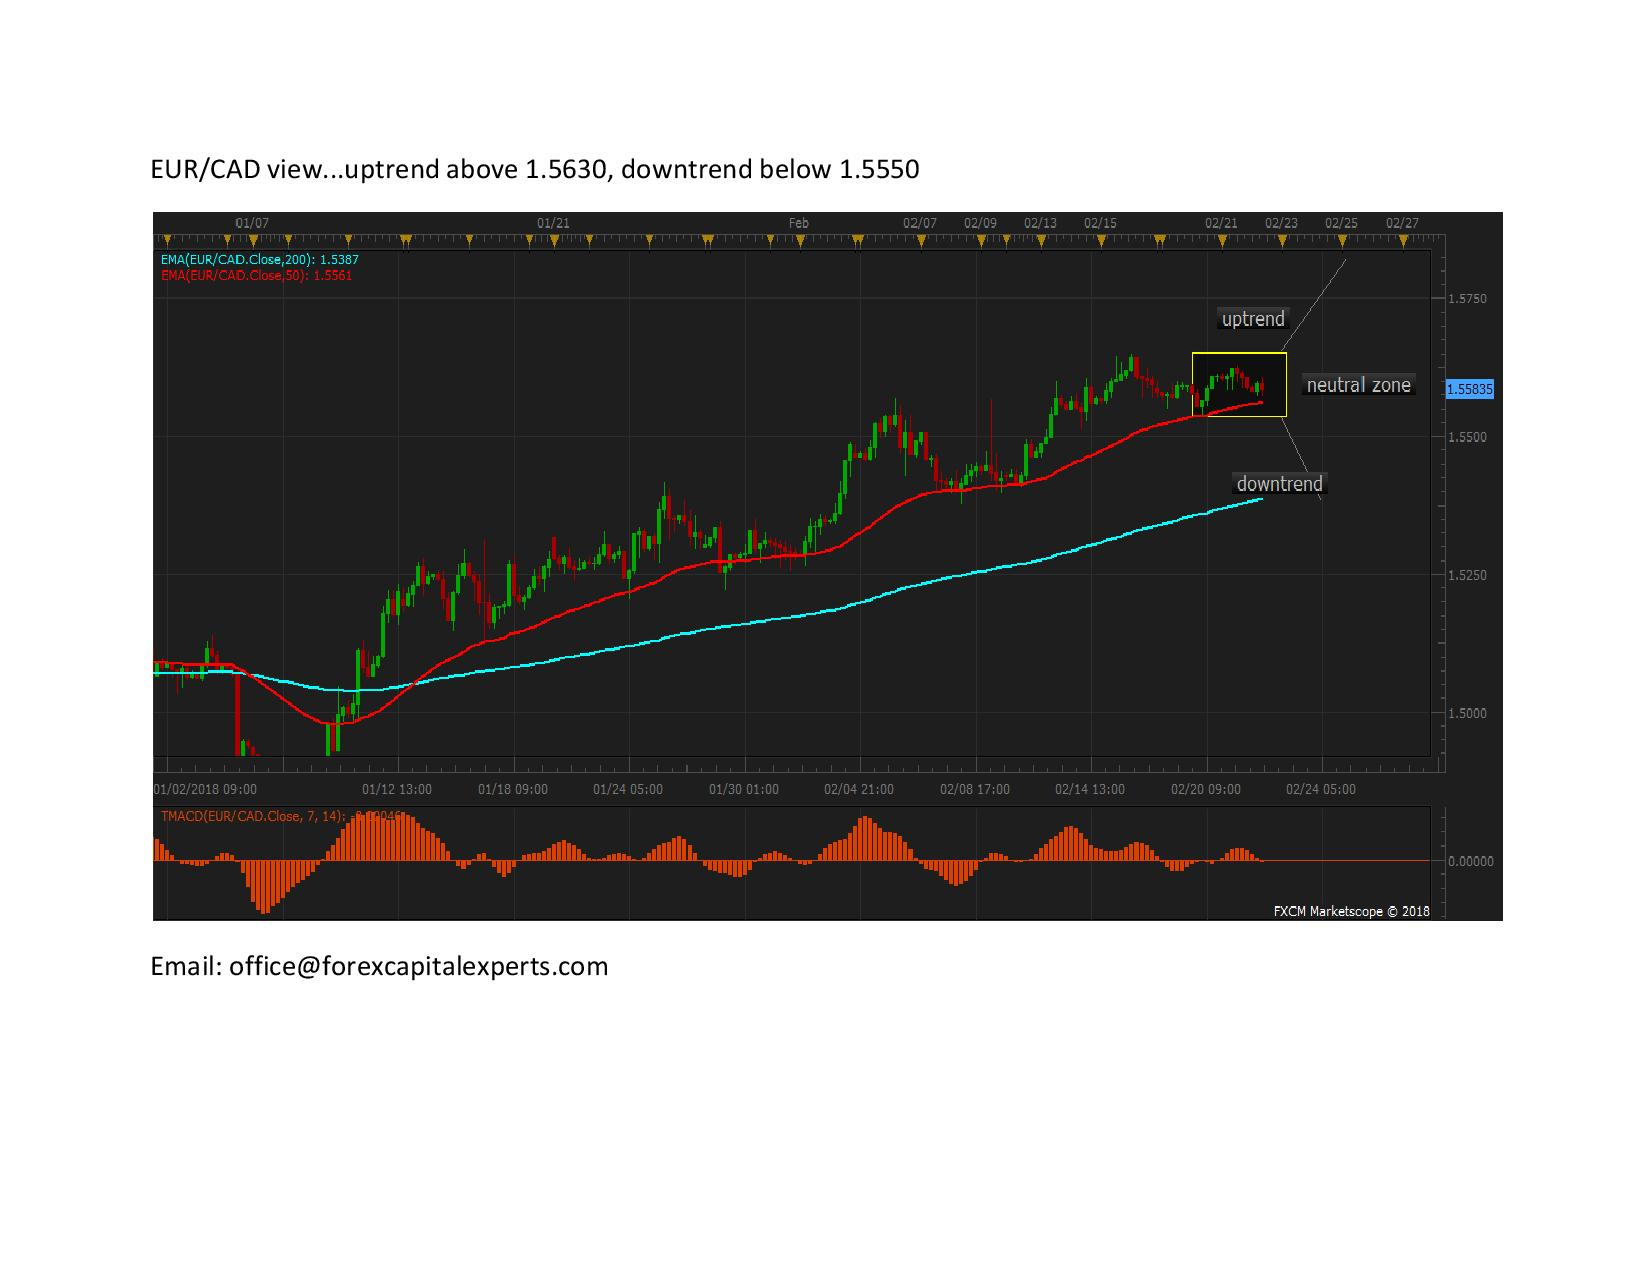 EURCAD page 0011